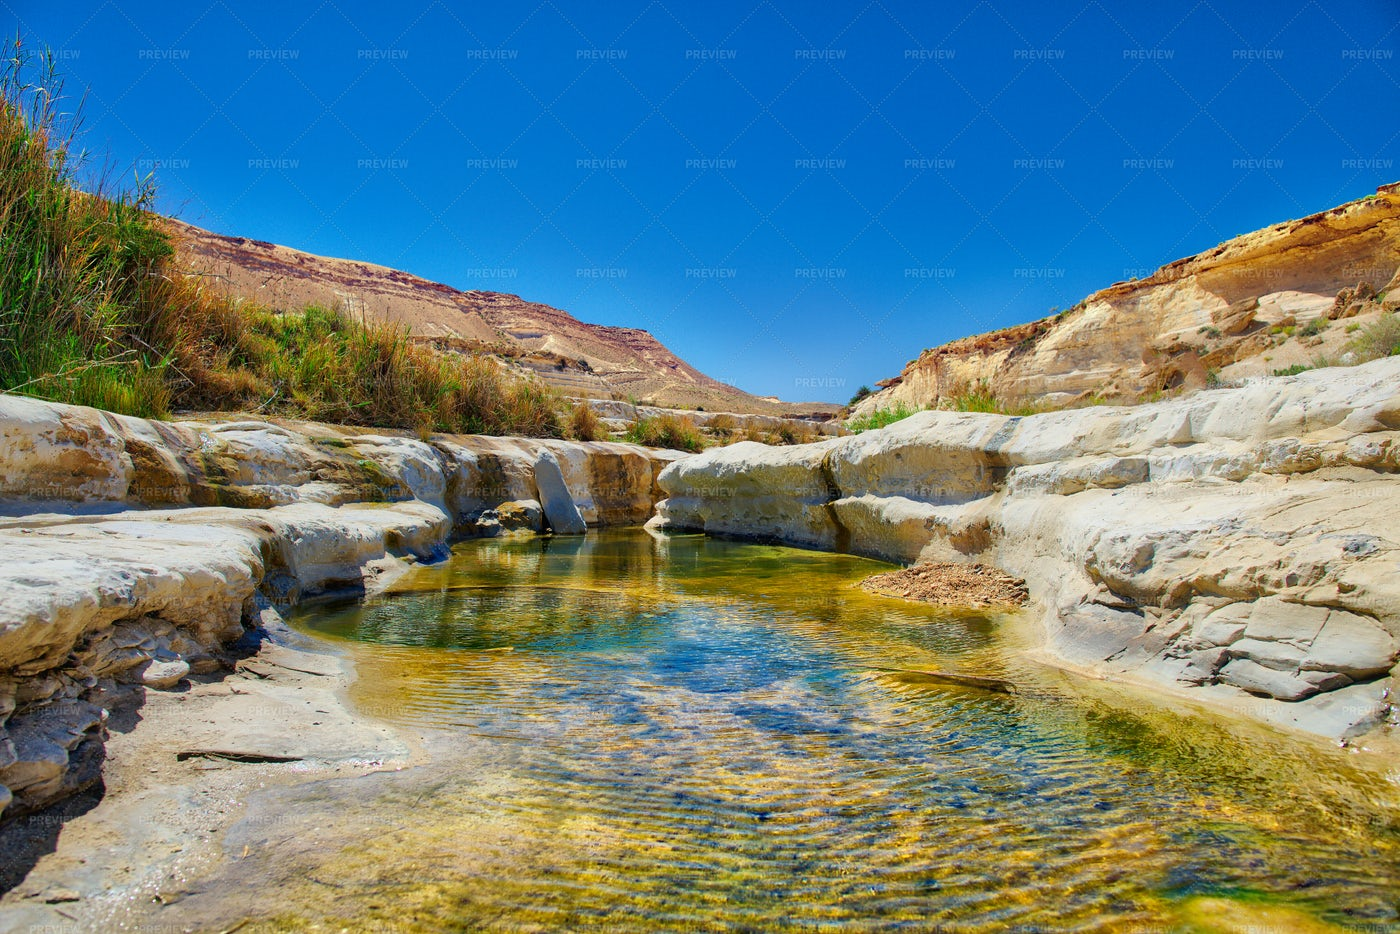 Water Oasis In The Desert: Stock Photos